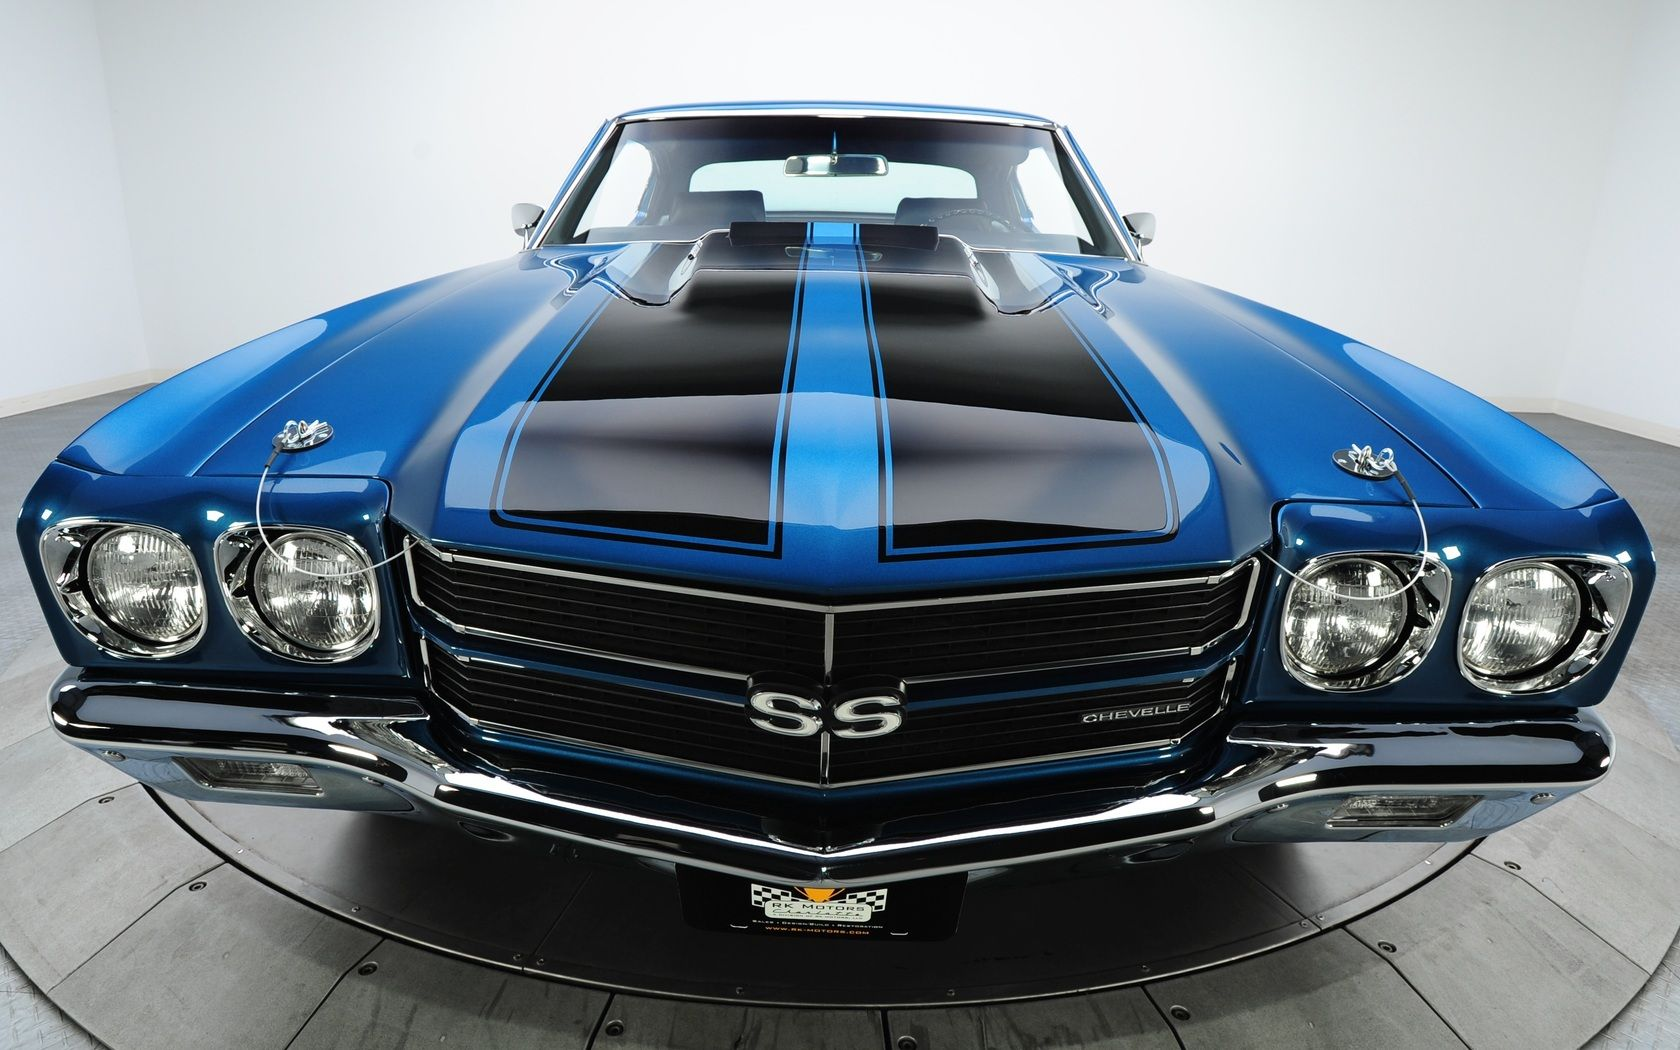 Chevrolet Shevil Muscle Cars Hd Best Wallpapers Pixel Hd